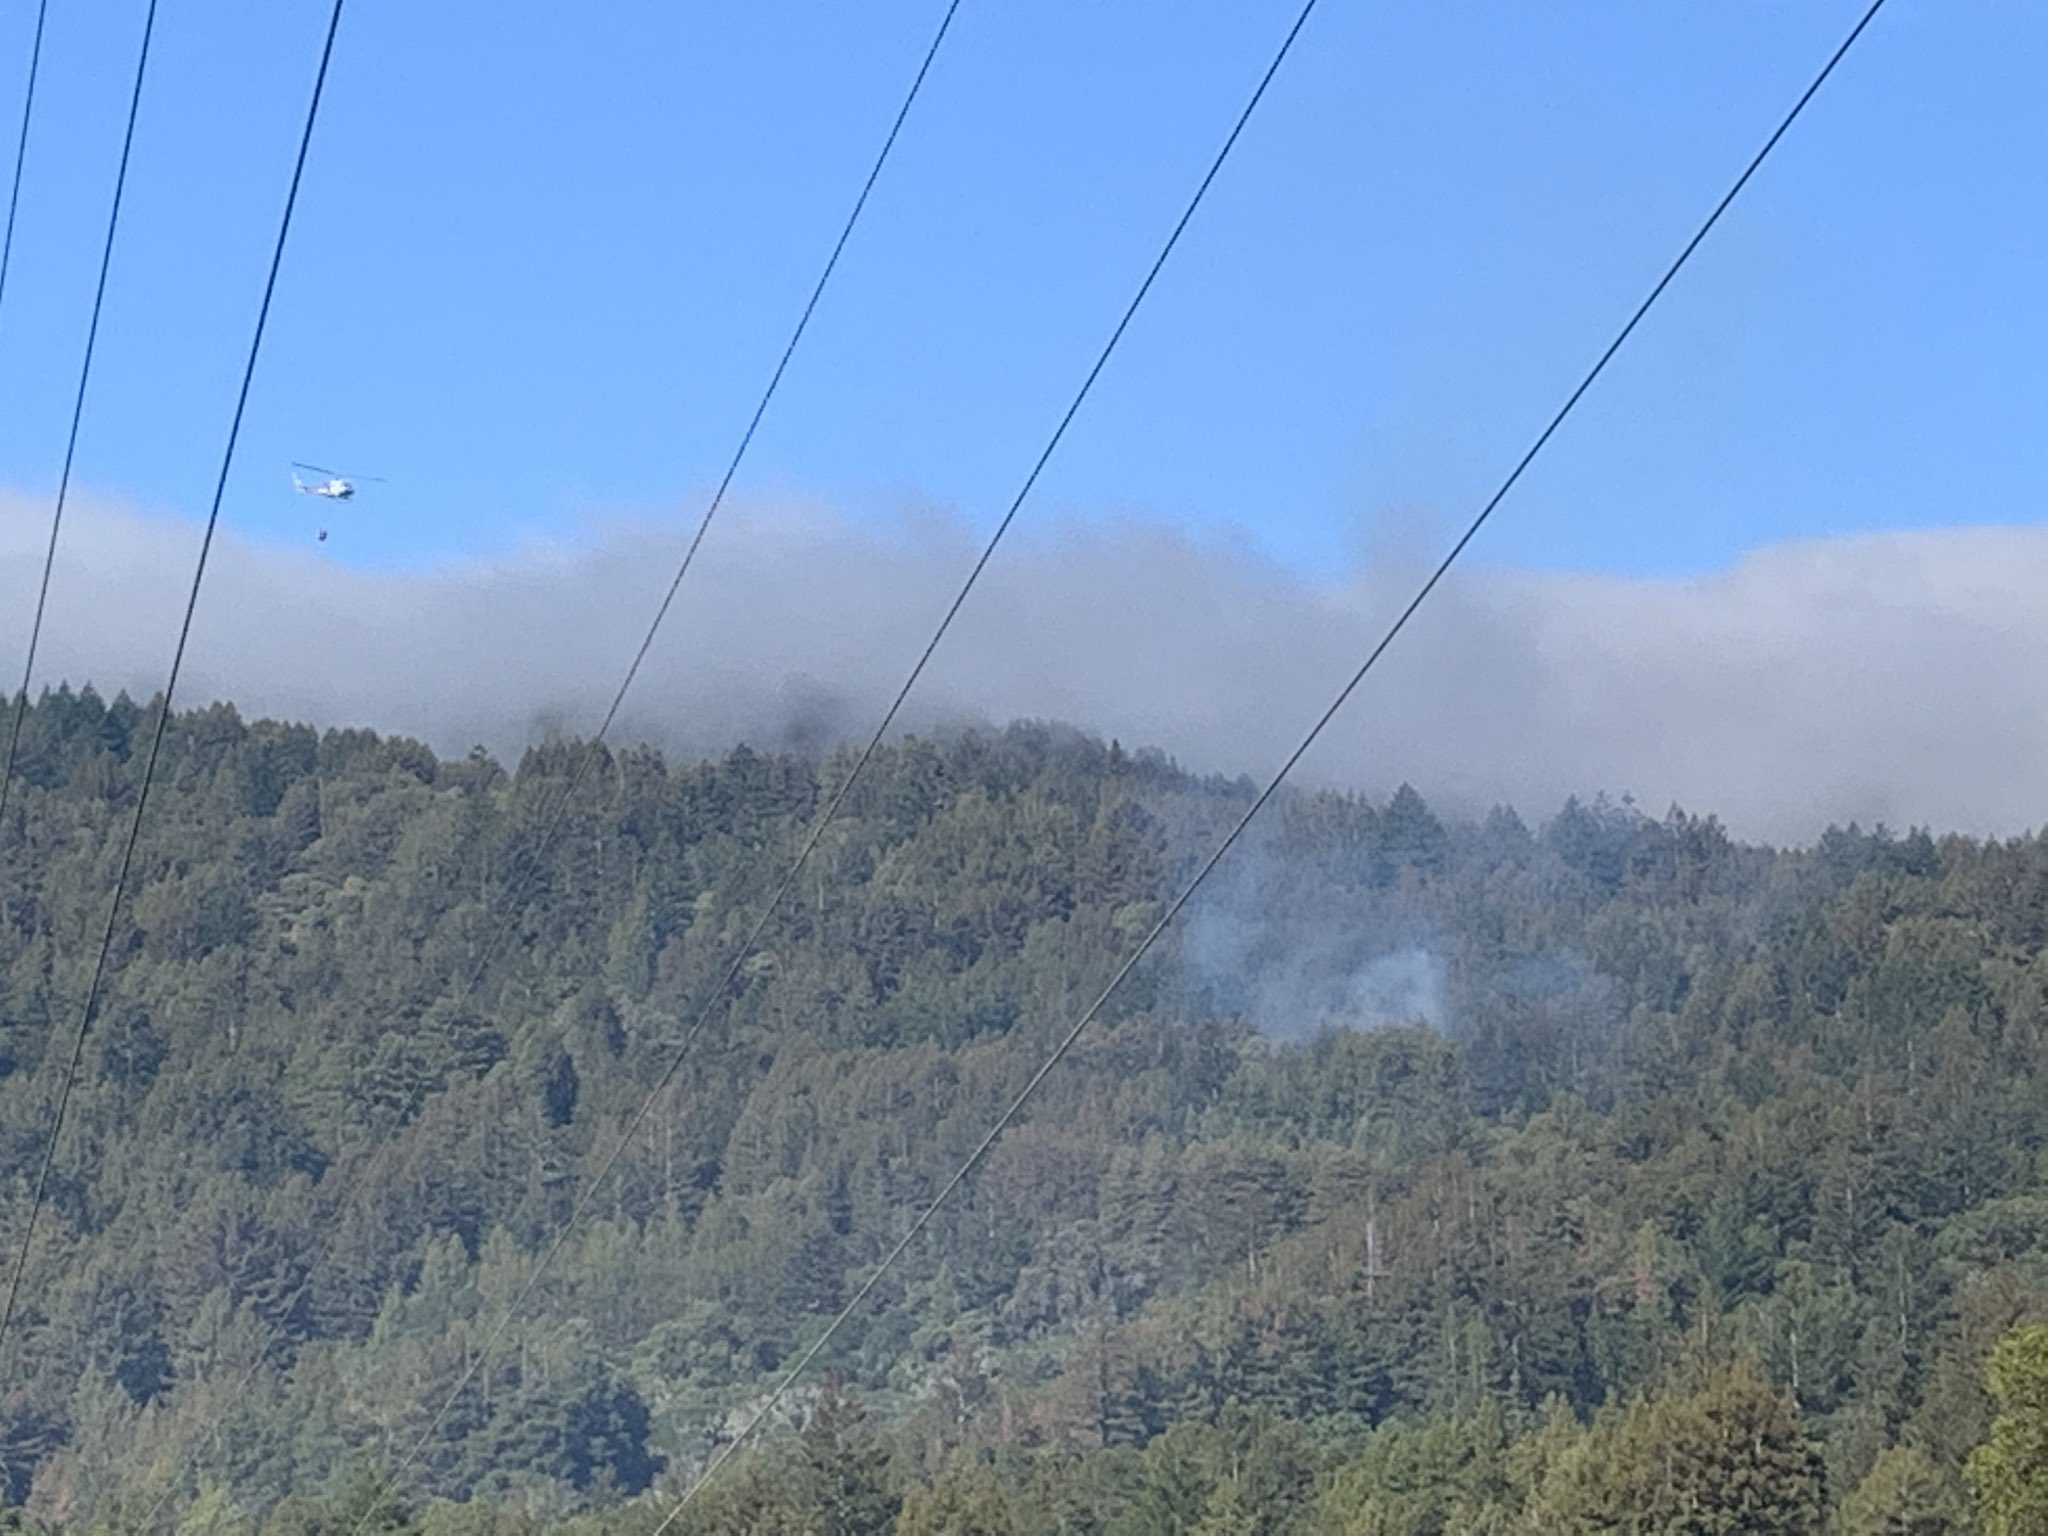 Grass fire now under control in San Mateo County, Cal Fire at scene